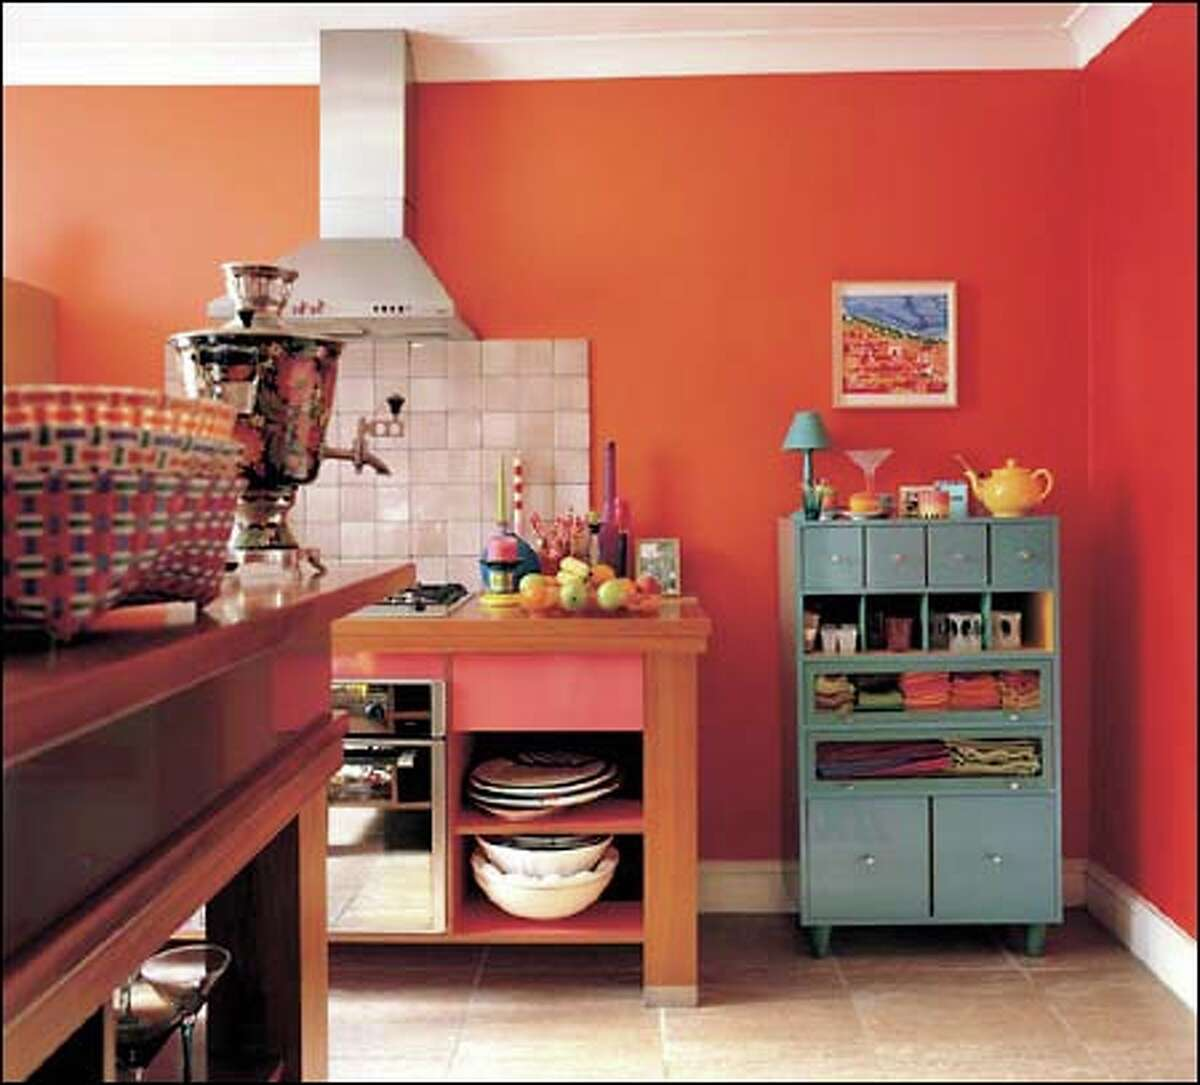 Using a bold color such as red gives balance to a kitchen dominated by bright lights, neutral tiles and a white ceiling.